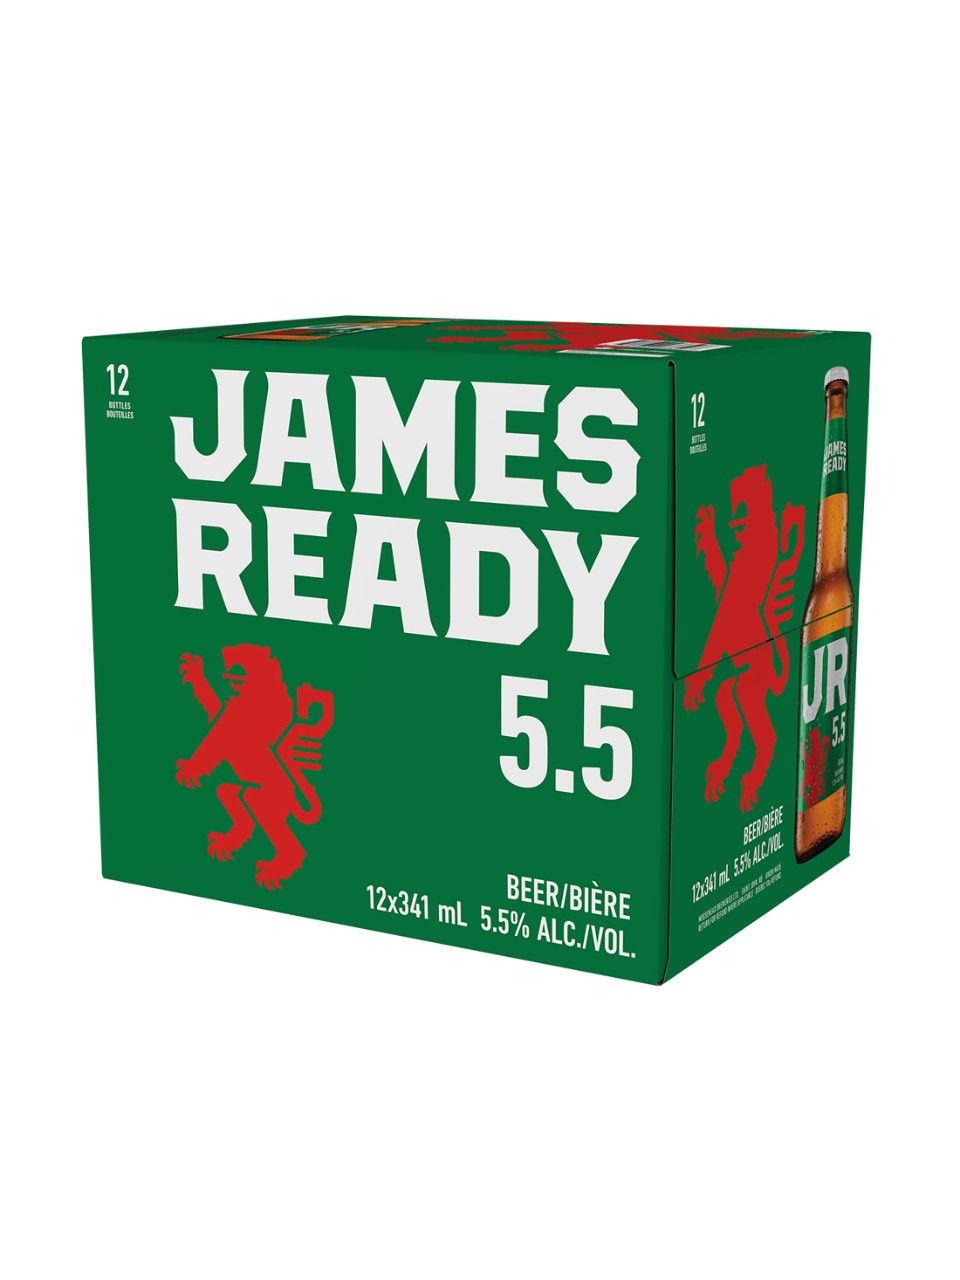 James Ready 5.5 from LCBO